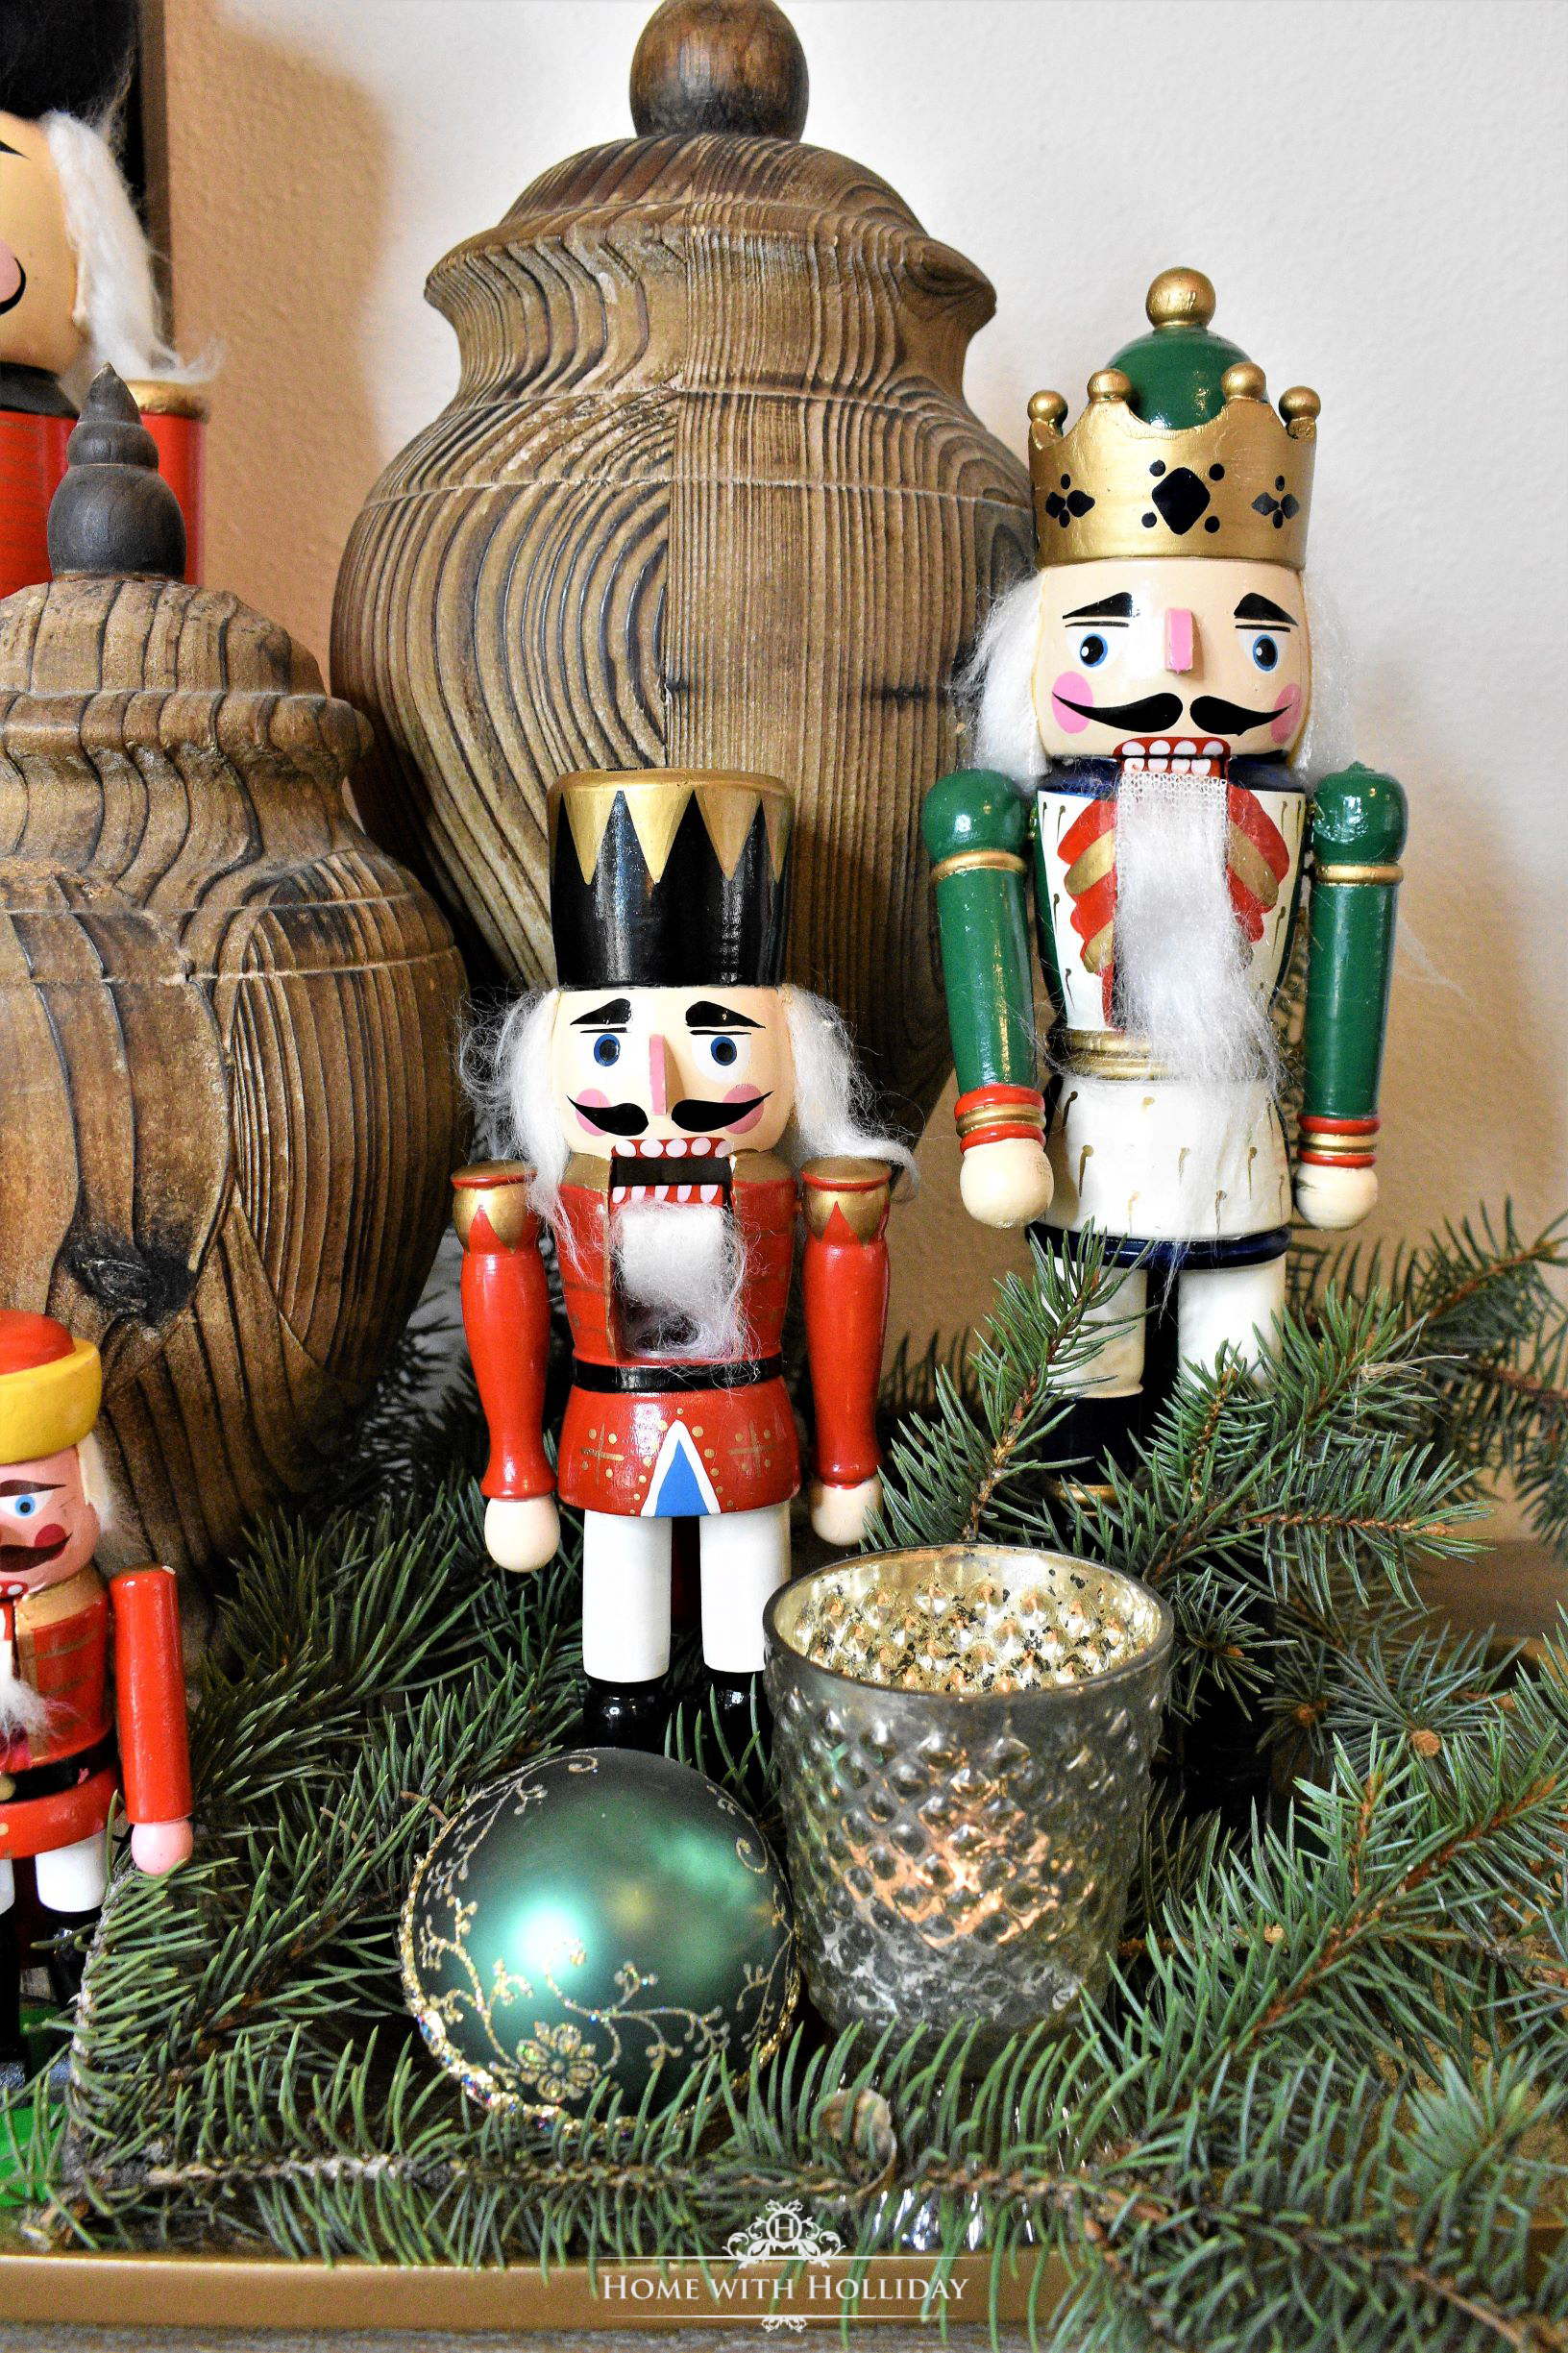 Decorating a Tray for Christmas 6 Ways - Nutcrackers - Home with Holliday